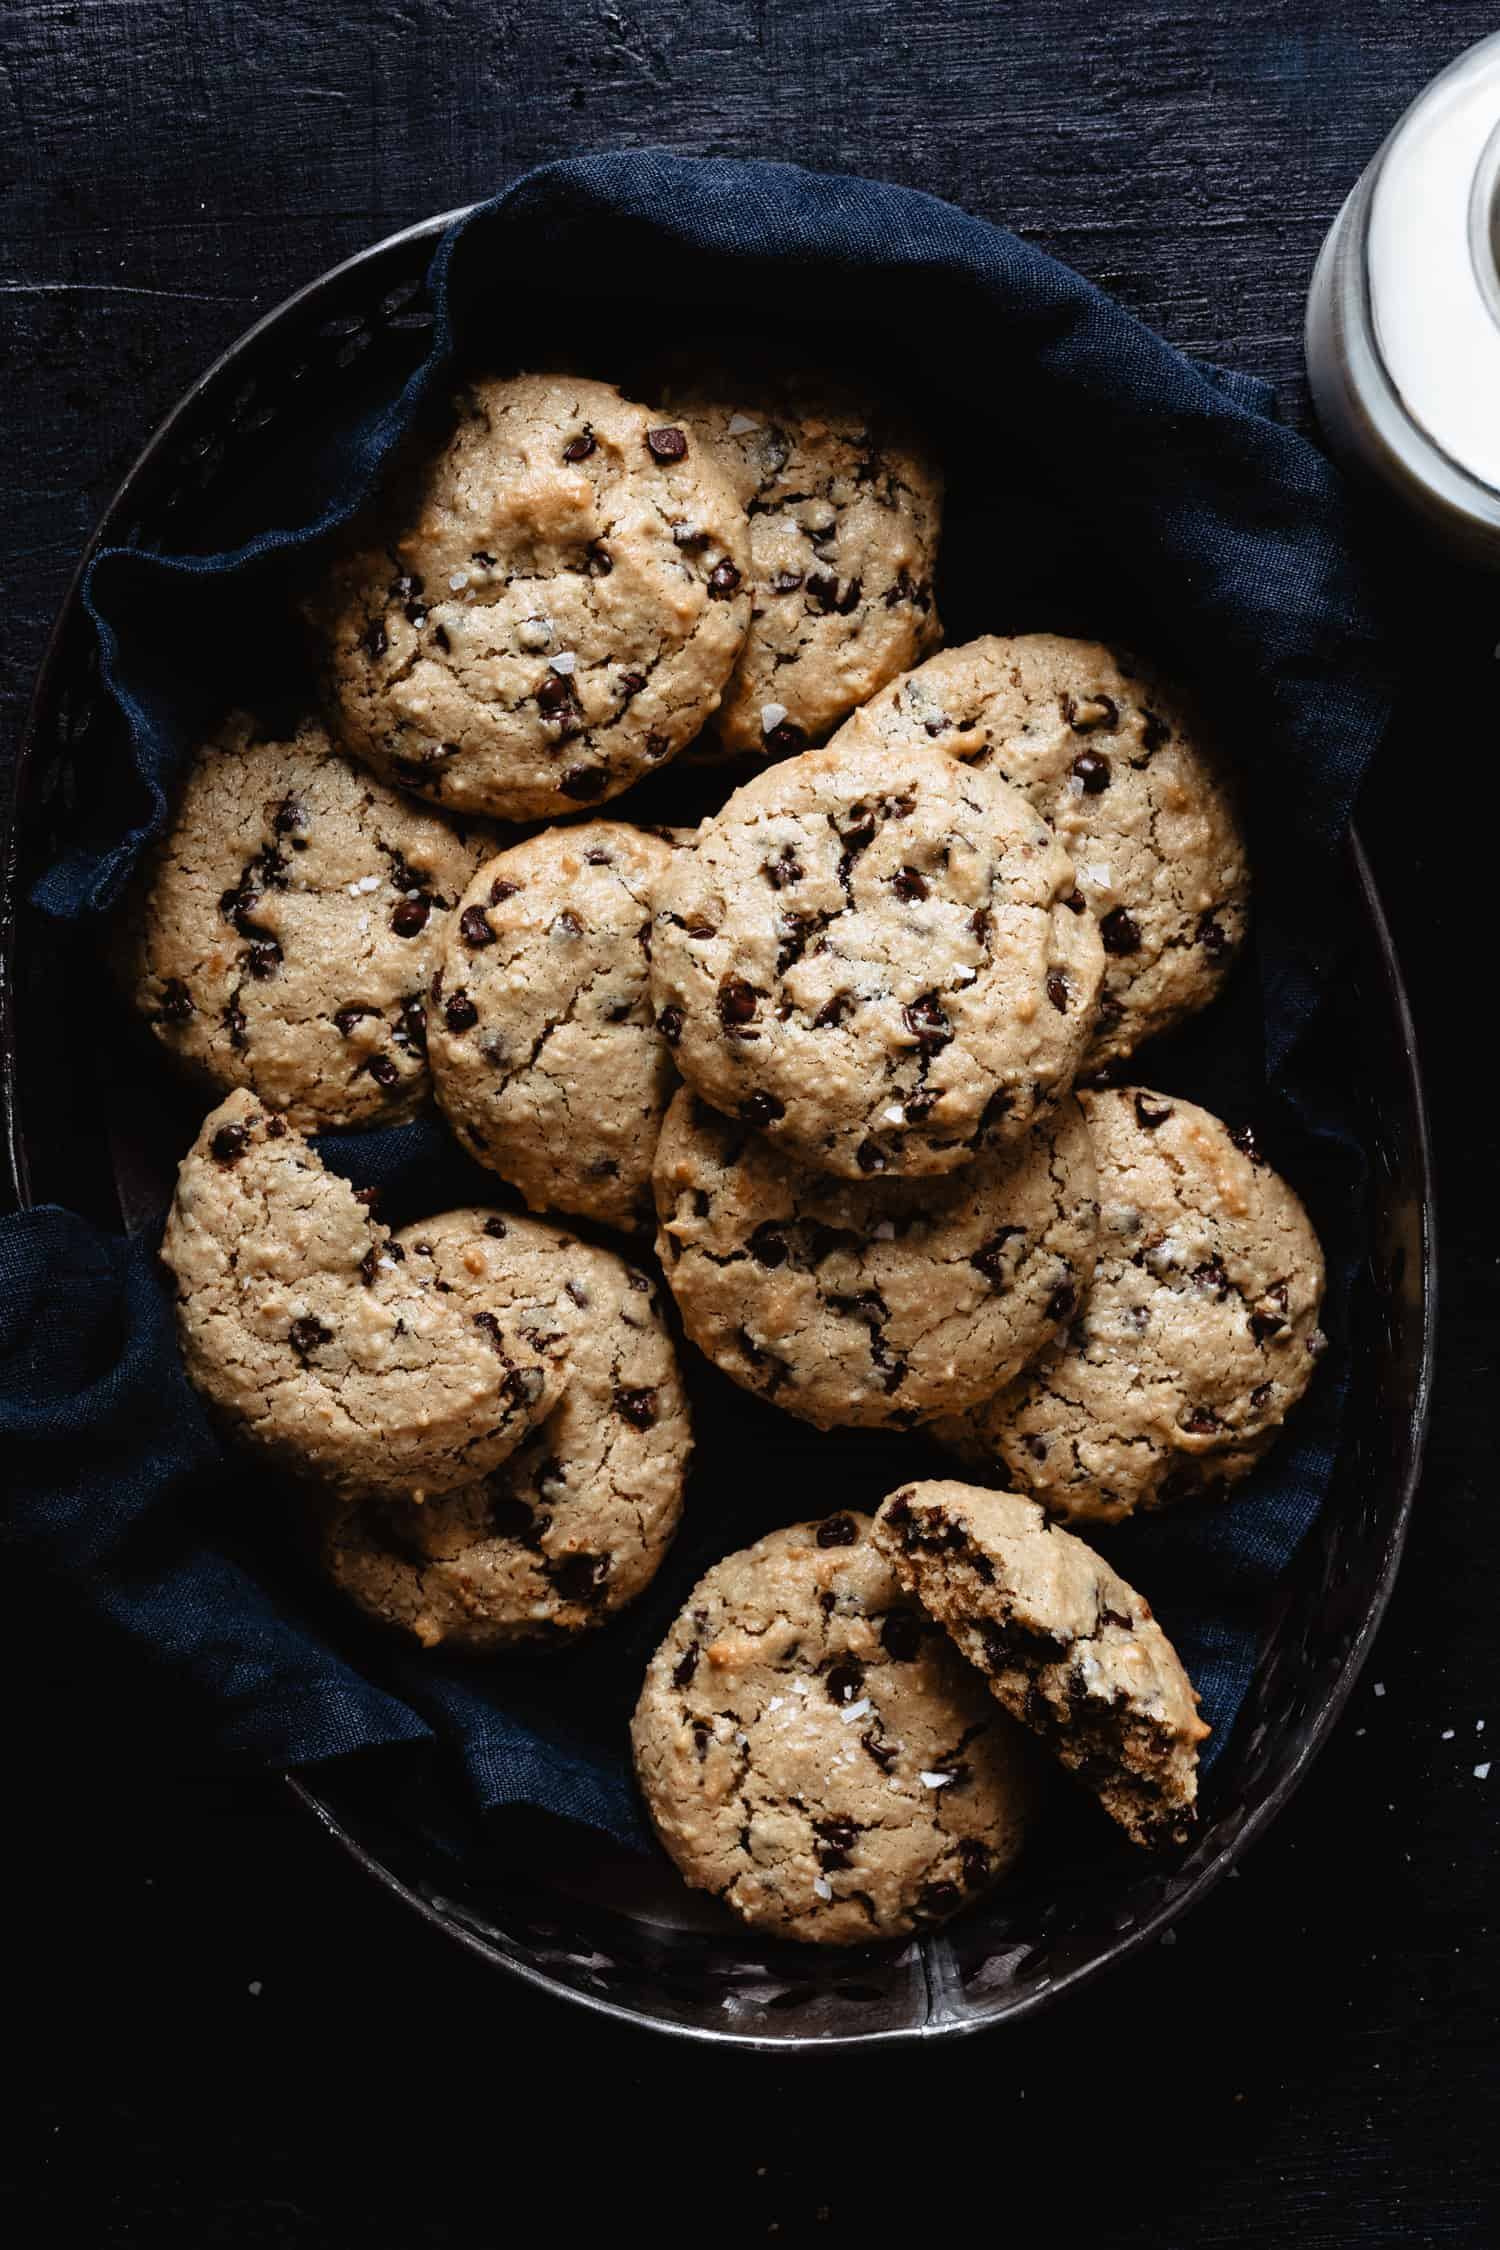 These life changing tahini chocolate chip cookies are the best paleo-friendly, grain-free, and gluten-free cookies around.